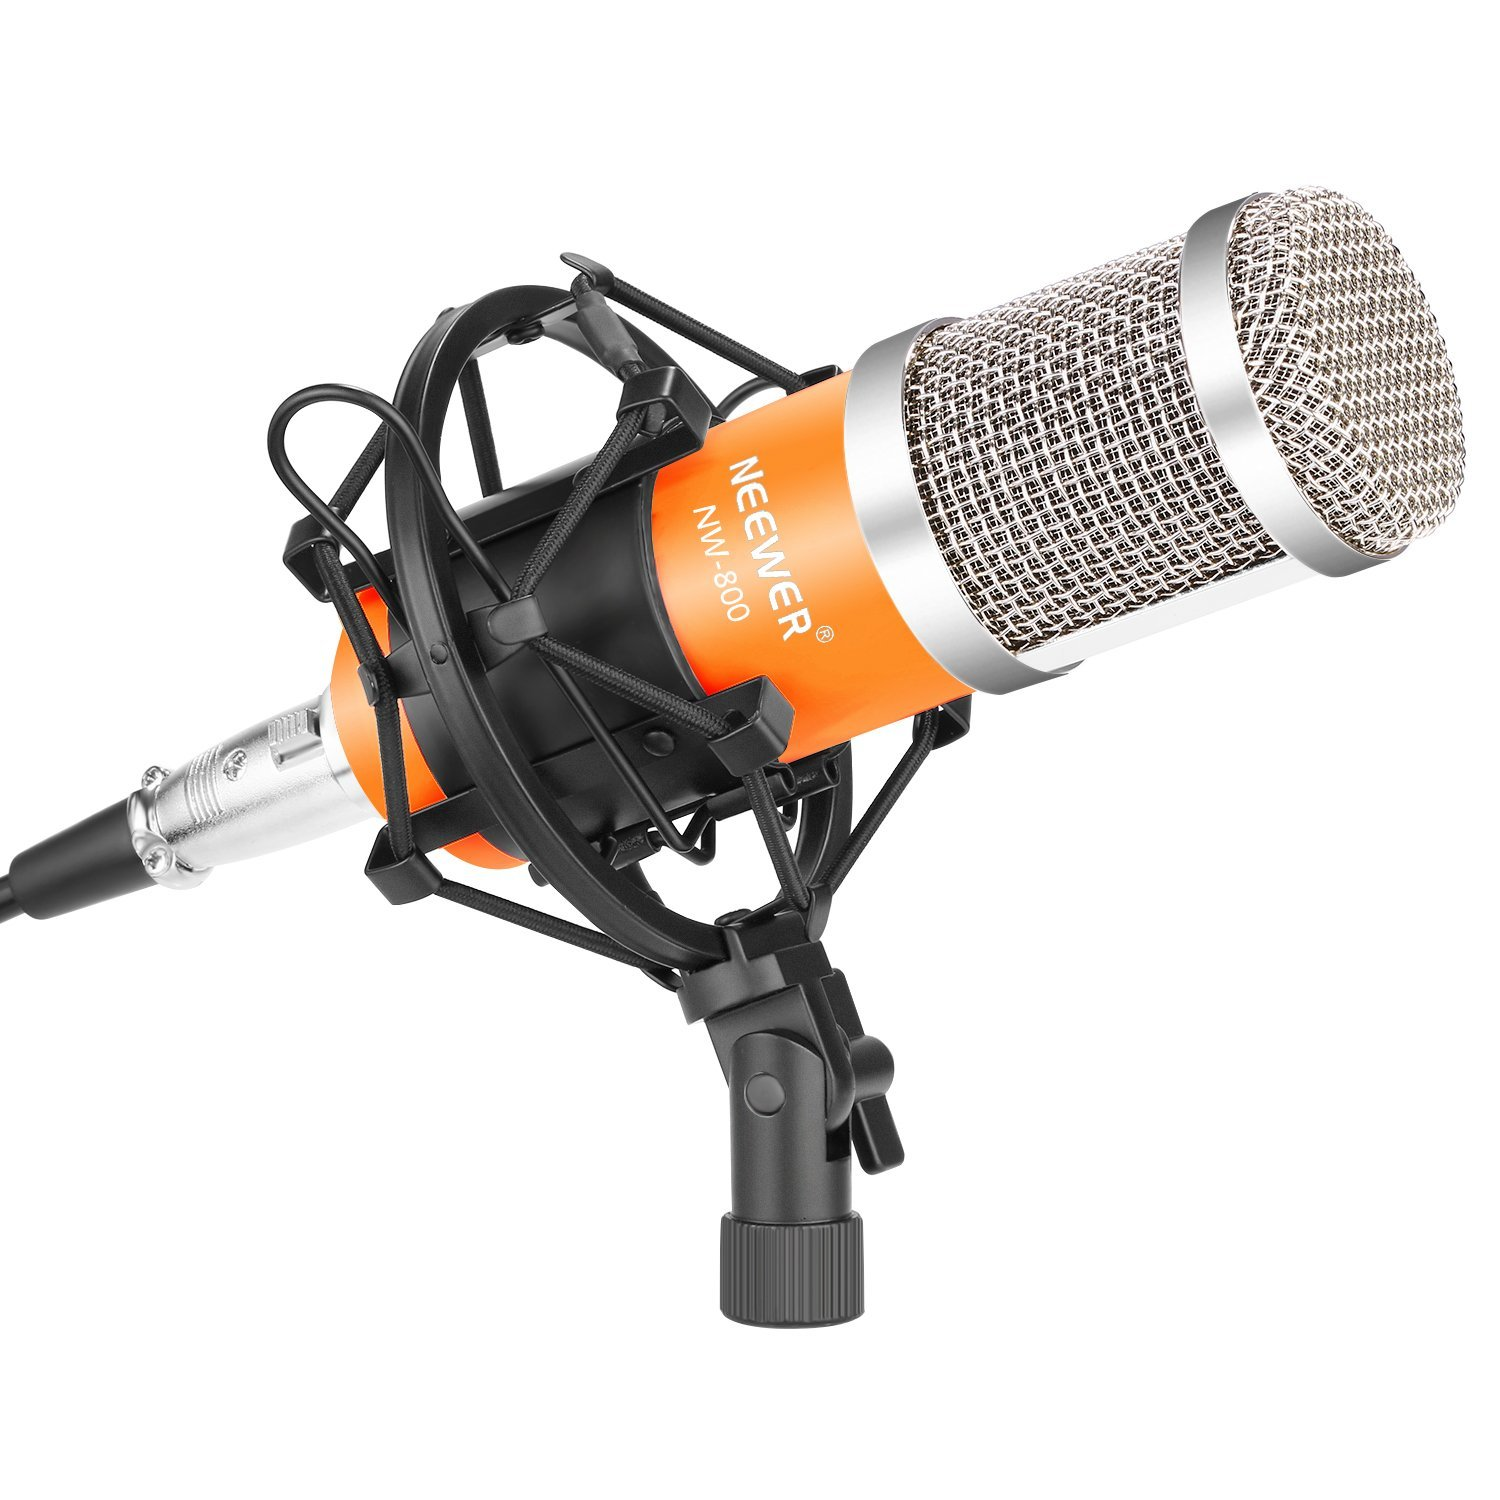 Neewer NW-800 Professional Studio Broadcasting & Recording Microphone Set: (1)NW-800 Condenser Microphone + (1)Microphone Shock Mount + (1)Ball-type Anti-wind Foam Cap + (1)3.5mm to XLR Cable(Yellow) by Neewer